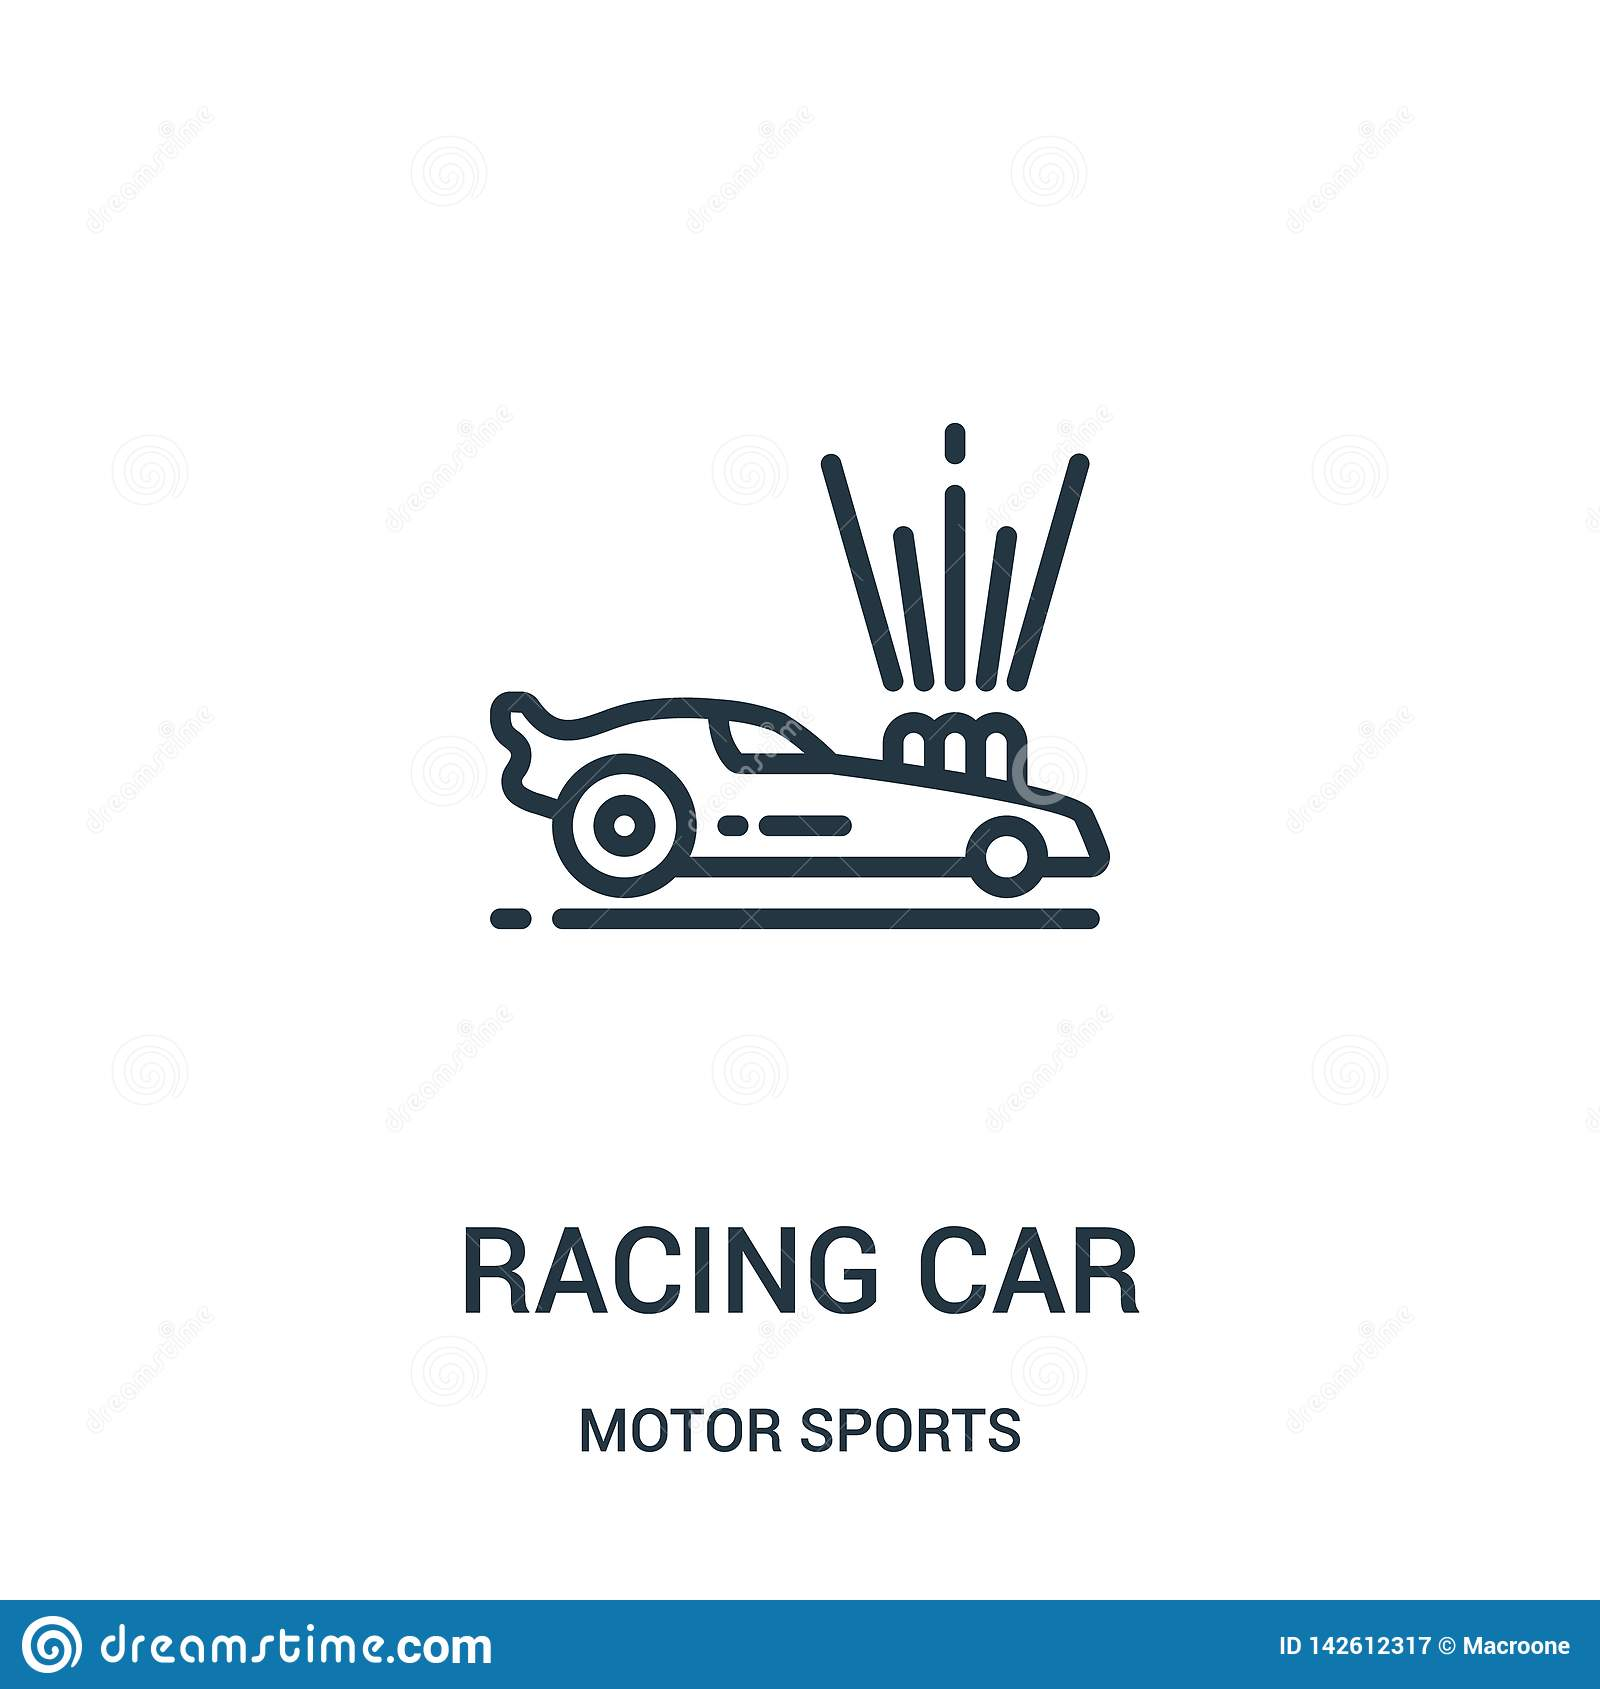 racing car icon vector from motor sports collection. Thin line racing car outline icon vector illustration. Linear symbol